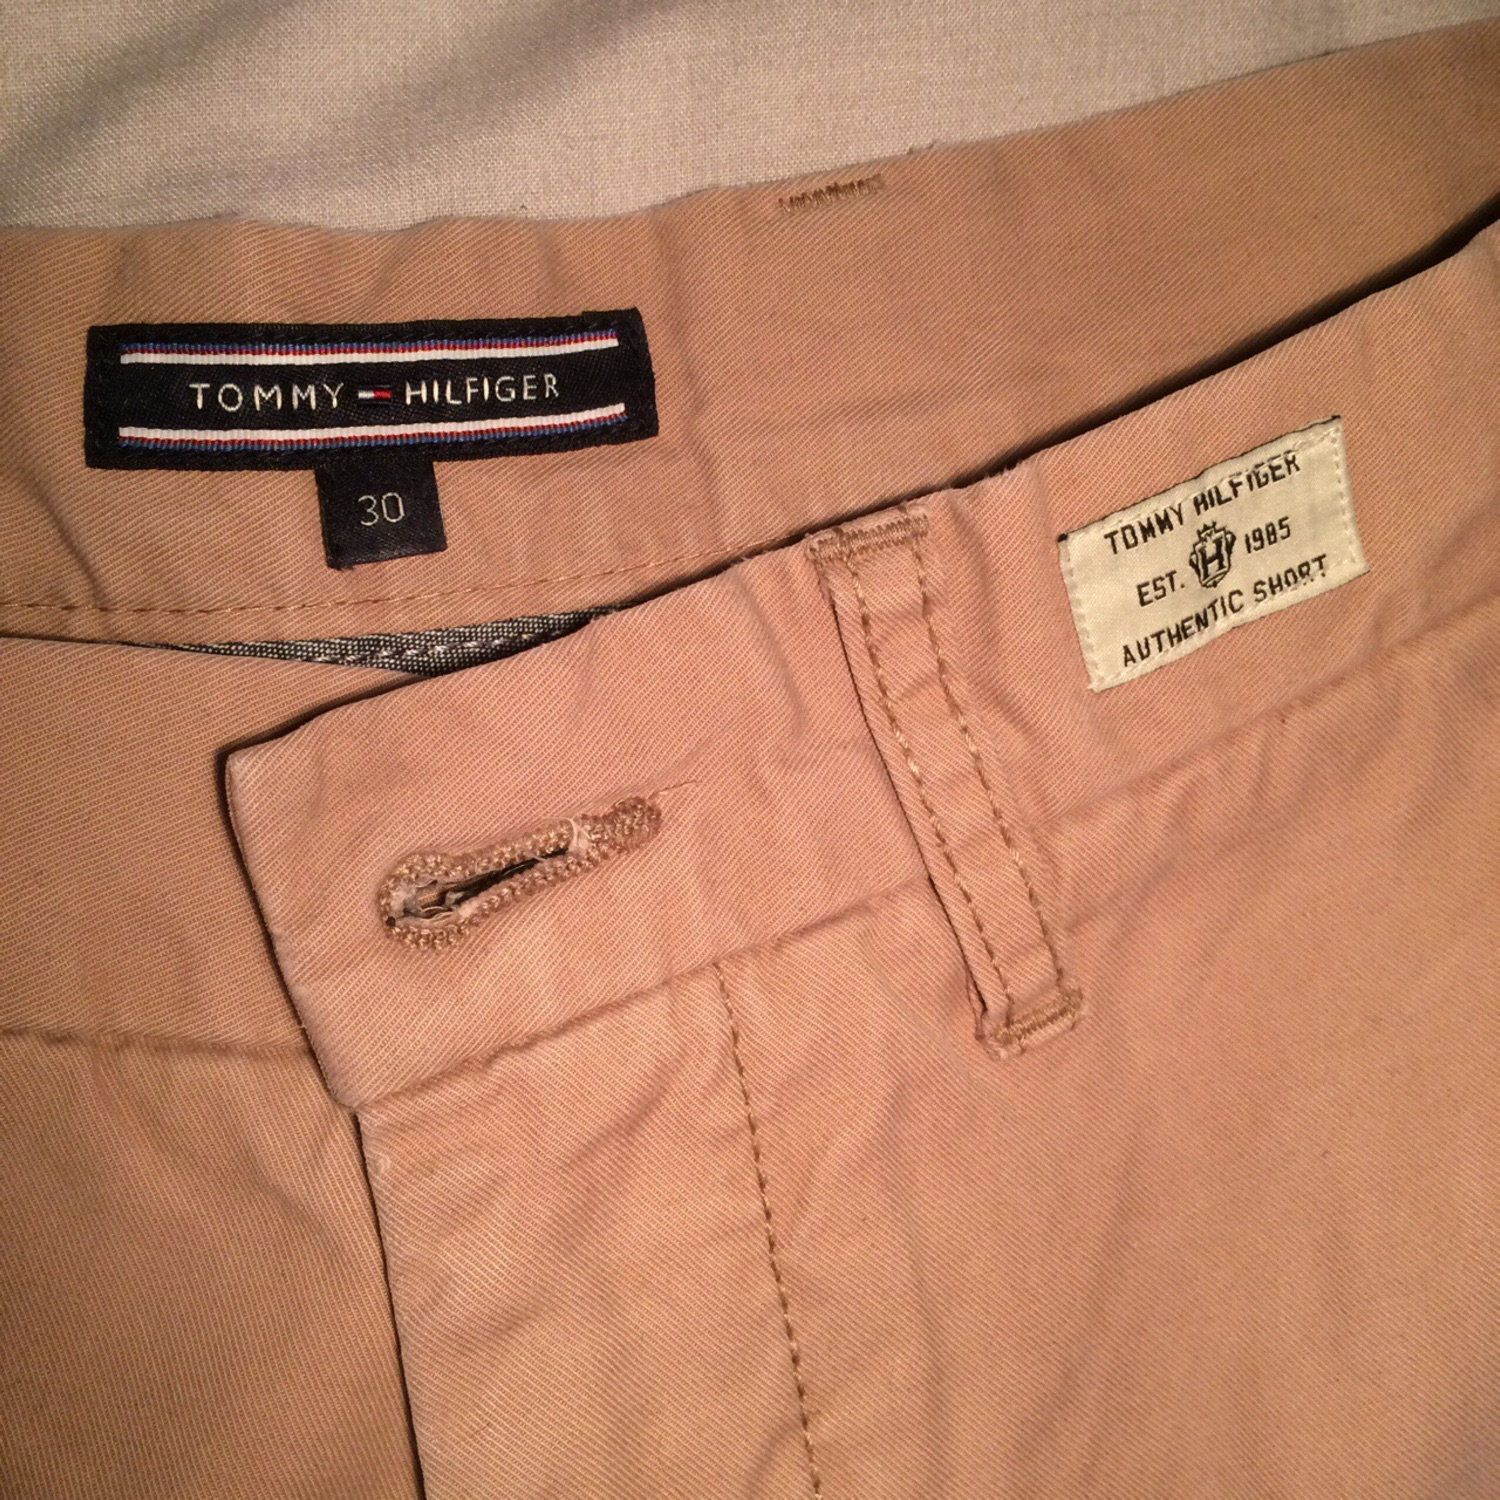 7e076708 Tommy Hilfiger Shorts, Authentic -Price Drop-!!!!